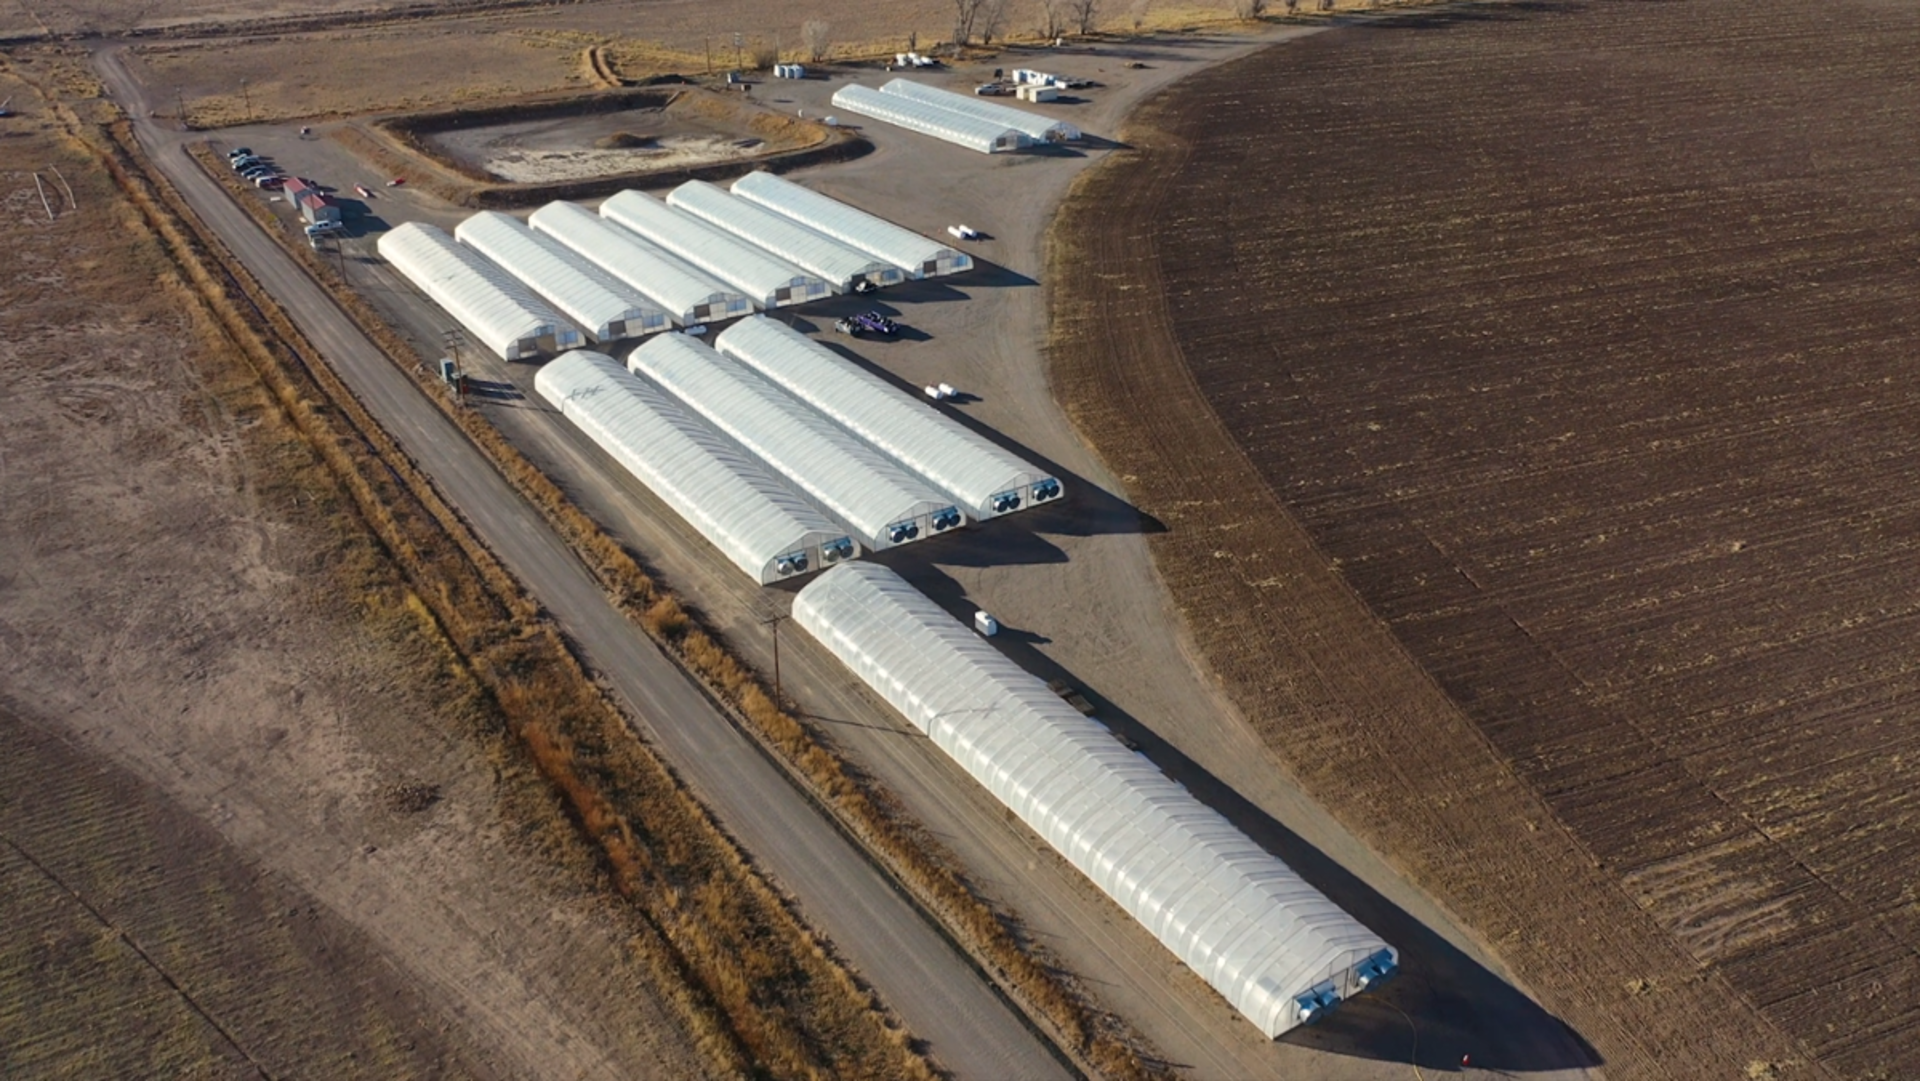 Scenic Acres Greenhouse Mfg Greenhouse w/ Four Exhaust Fans and Two Heaters, 34' x 200' gothic hoop - Image 10 of 10